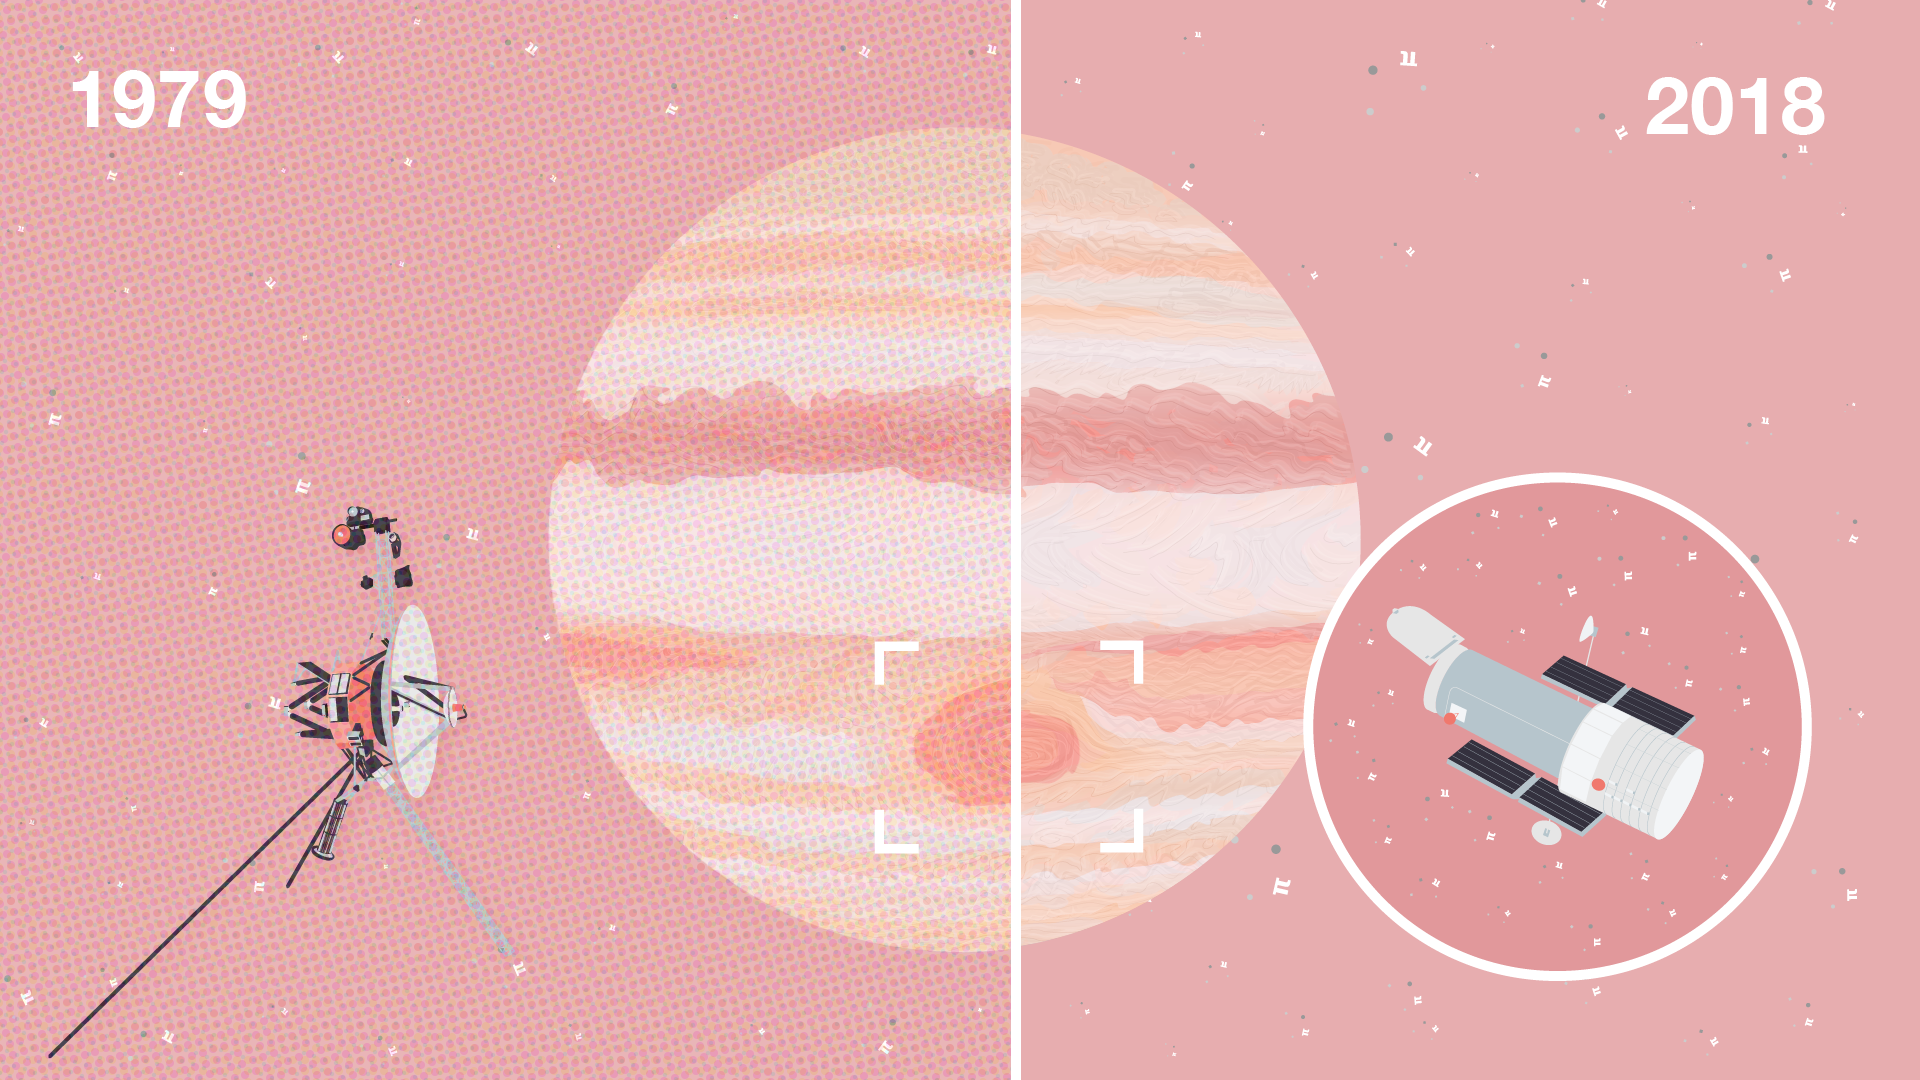 Illustration showing Jupiter and its great red spot in 1979 with the Voyager spacecraft flying by on one side. On the other side, Jupiter's great red spot is smaller and an inset shows the Hubble Space Telescope imaging the planet.